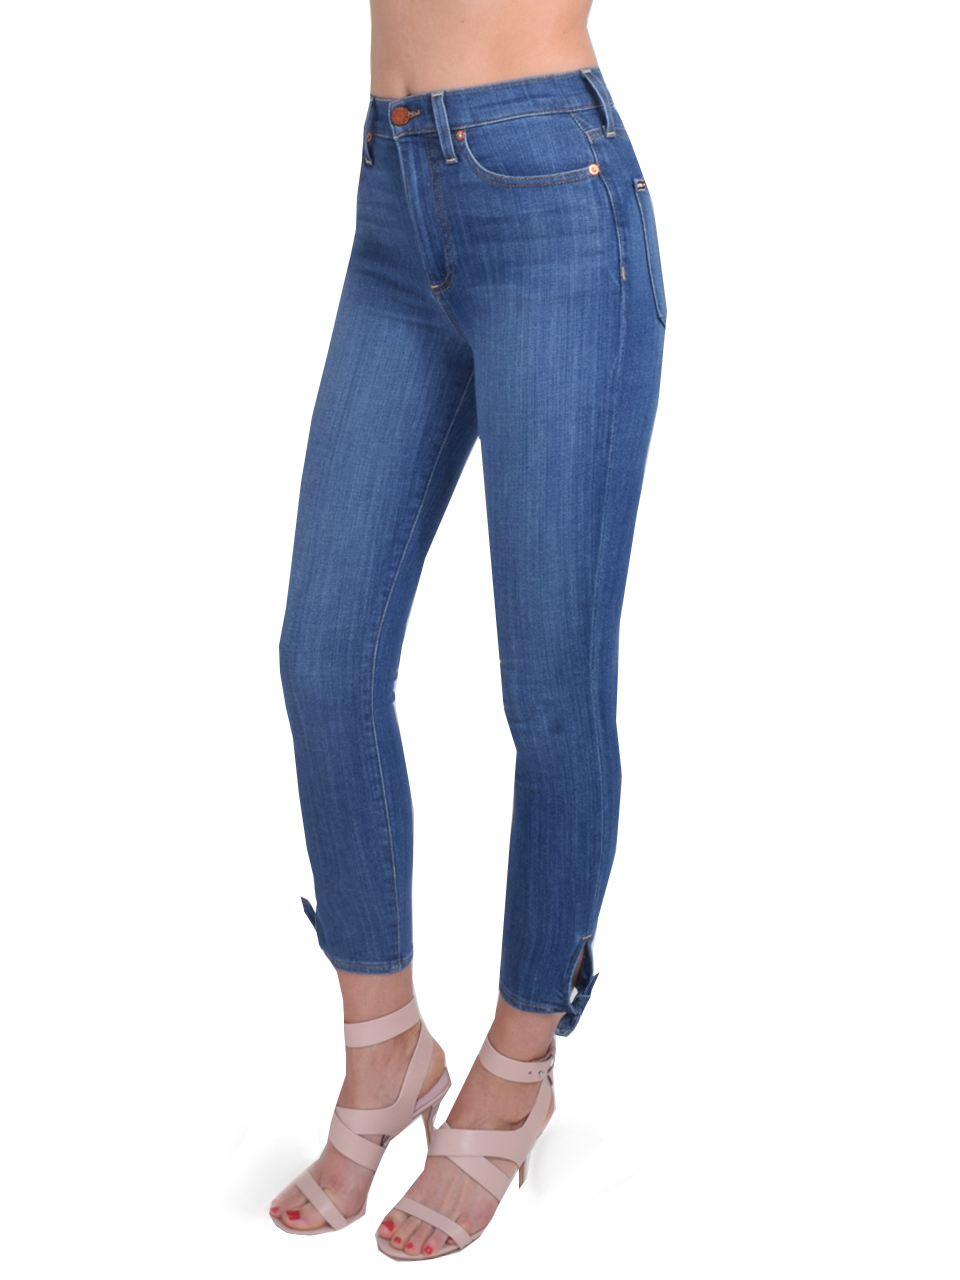 ALICE + OLIVIA Good High Rise Ankle Tie Jean In Blue